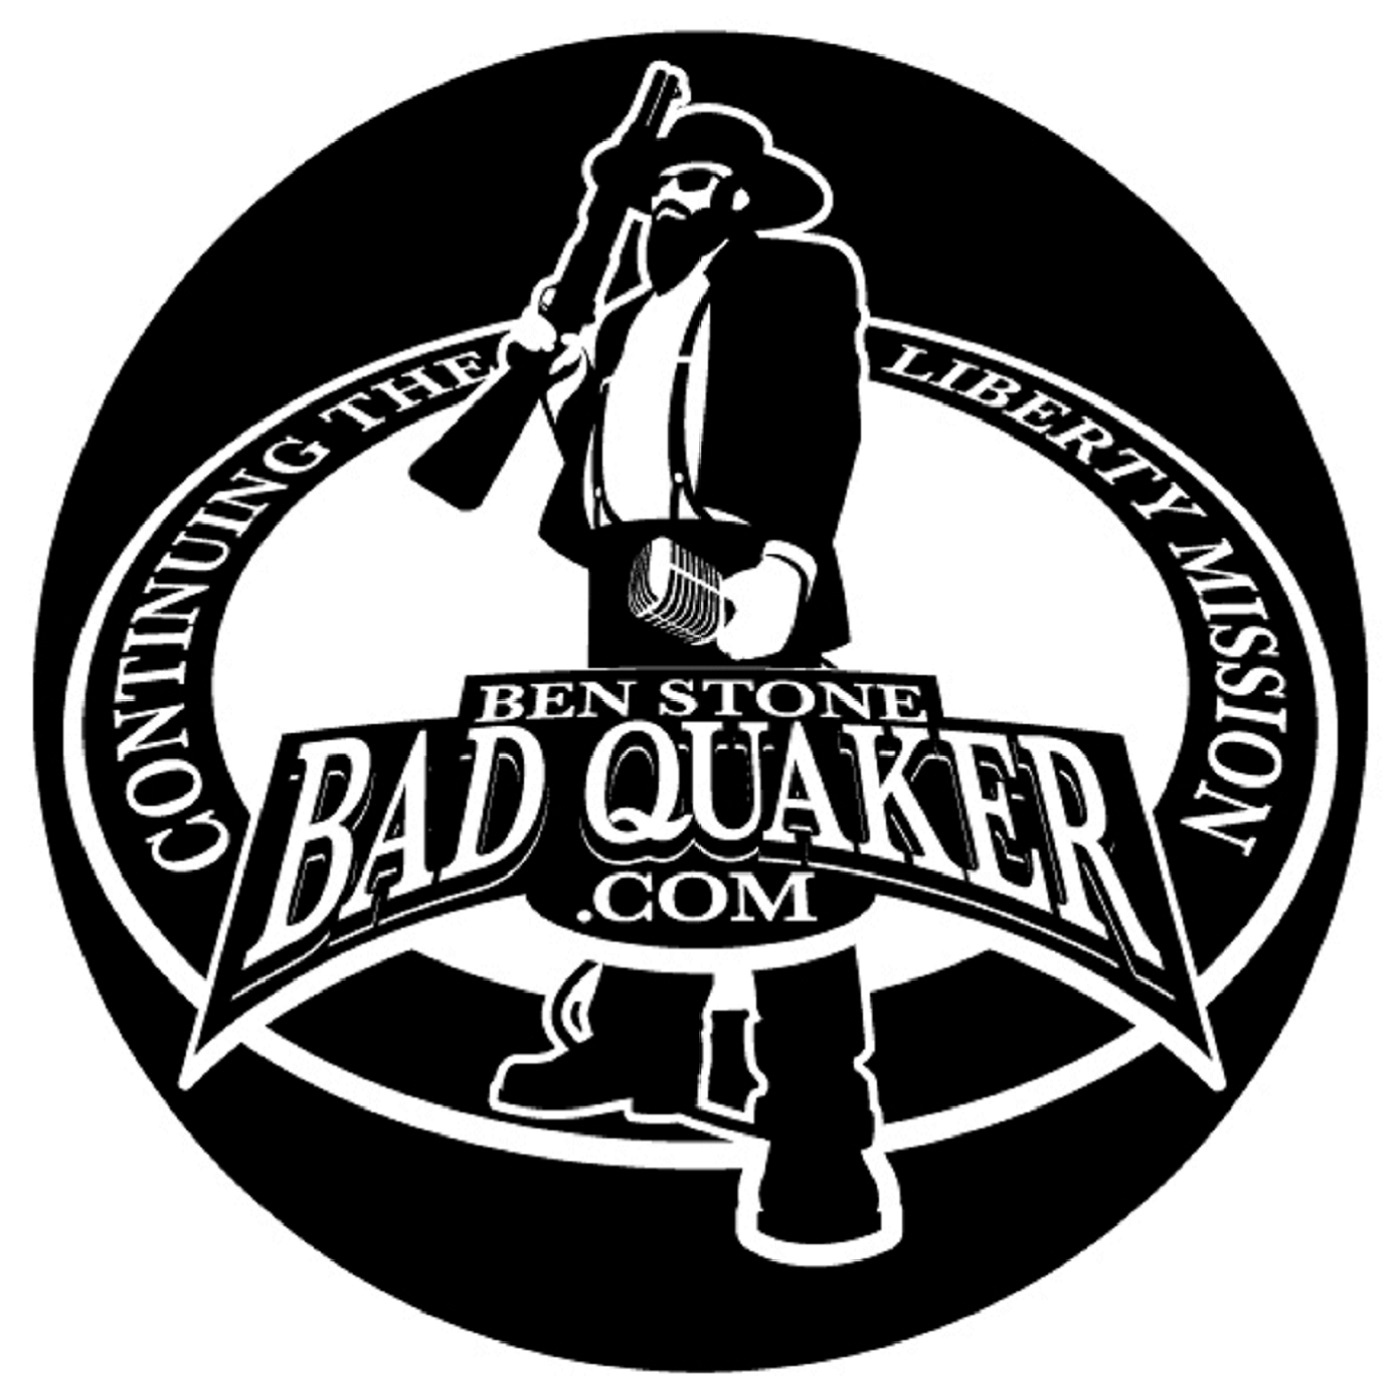 Bad Quaker Dot Com